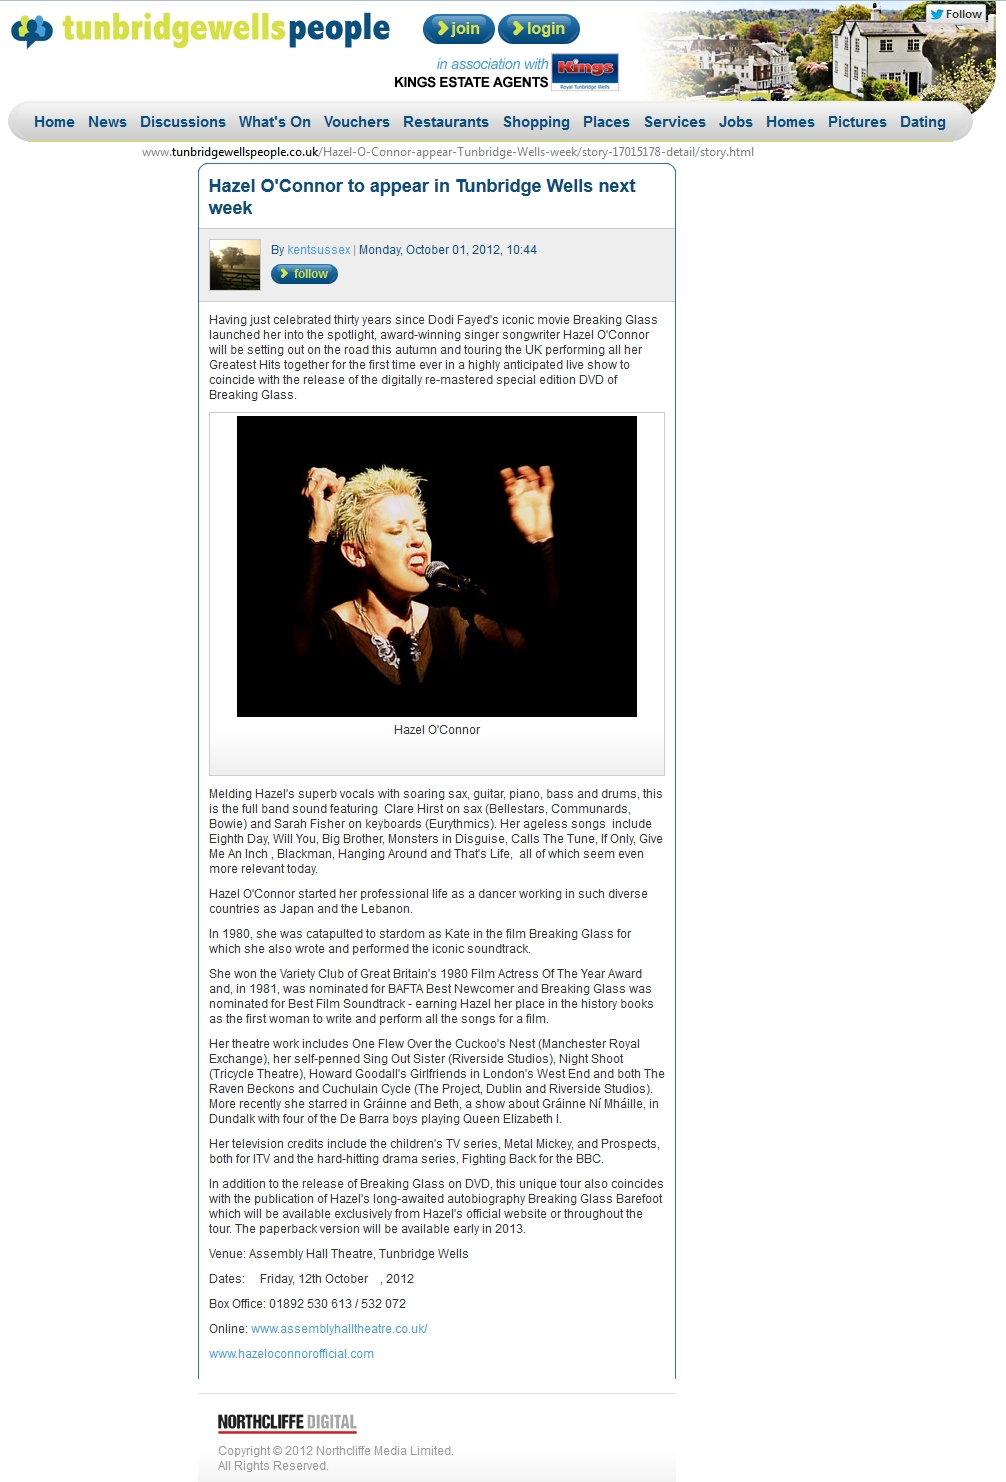 HAZEL O'CONNOR IN TUNBRIDGEWELLS PEOPLE - 01 OCT 2012